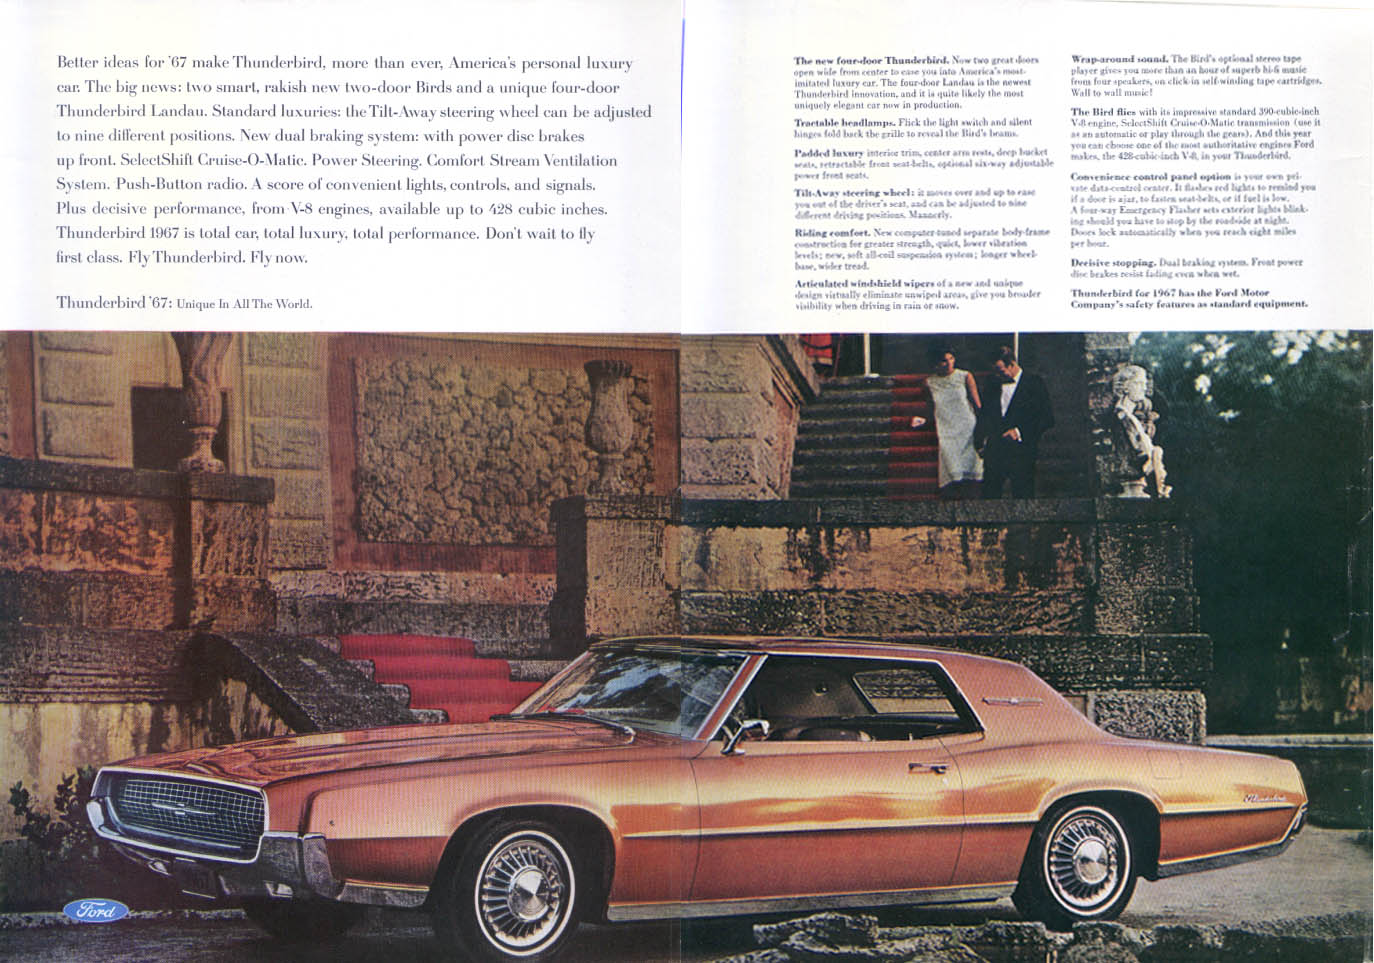 Image for Ford Thunderbird Fly Now ad 1967